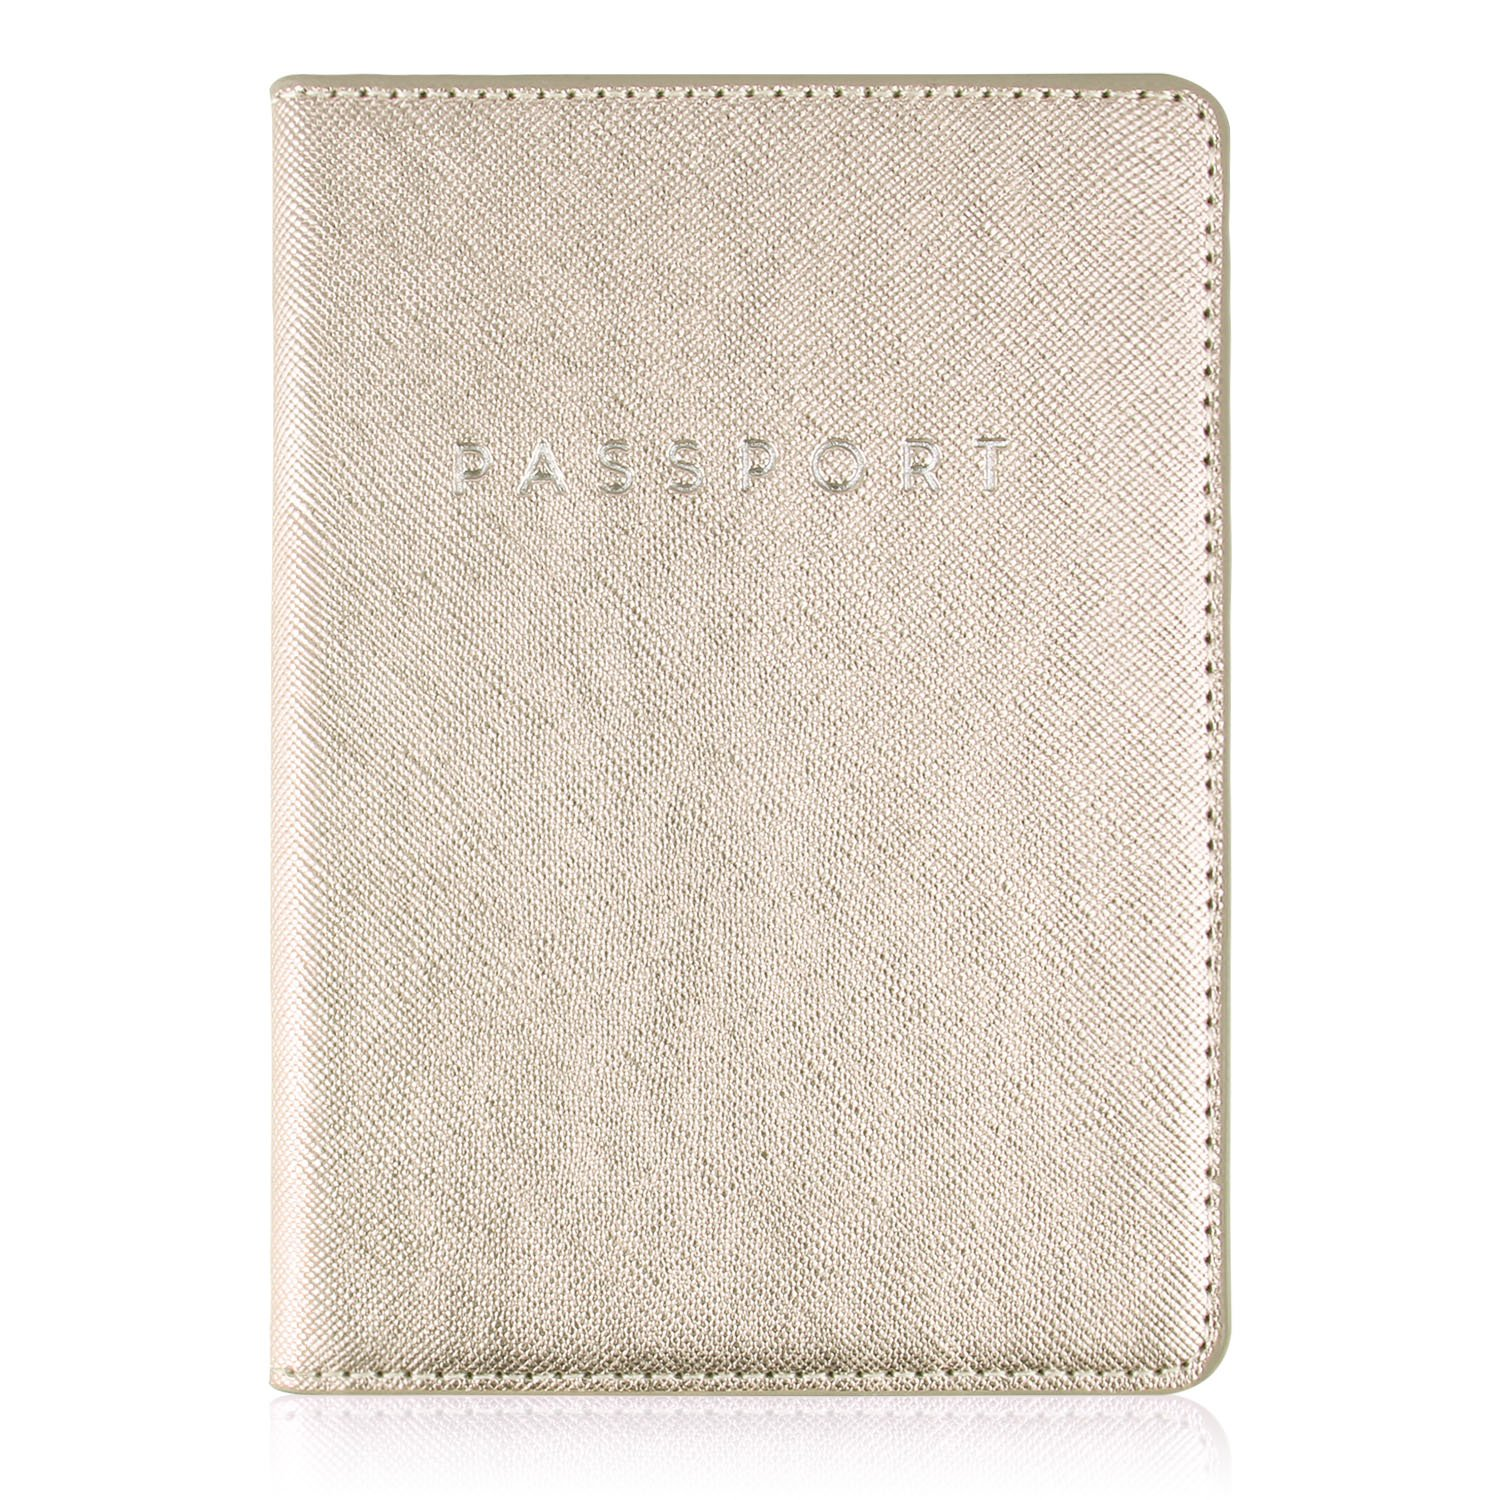 Leminimo Leather Passport Cover Case With RFID Blocking - Champagne Gold Passport Holder Travel Wallet LMPH-ChampGold